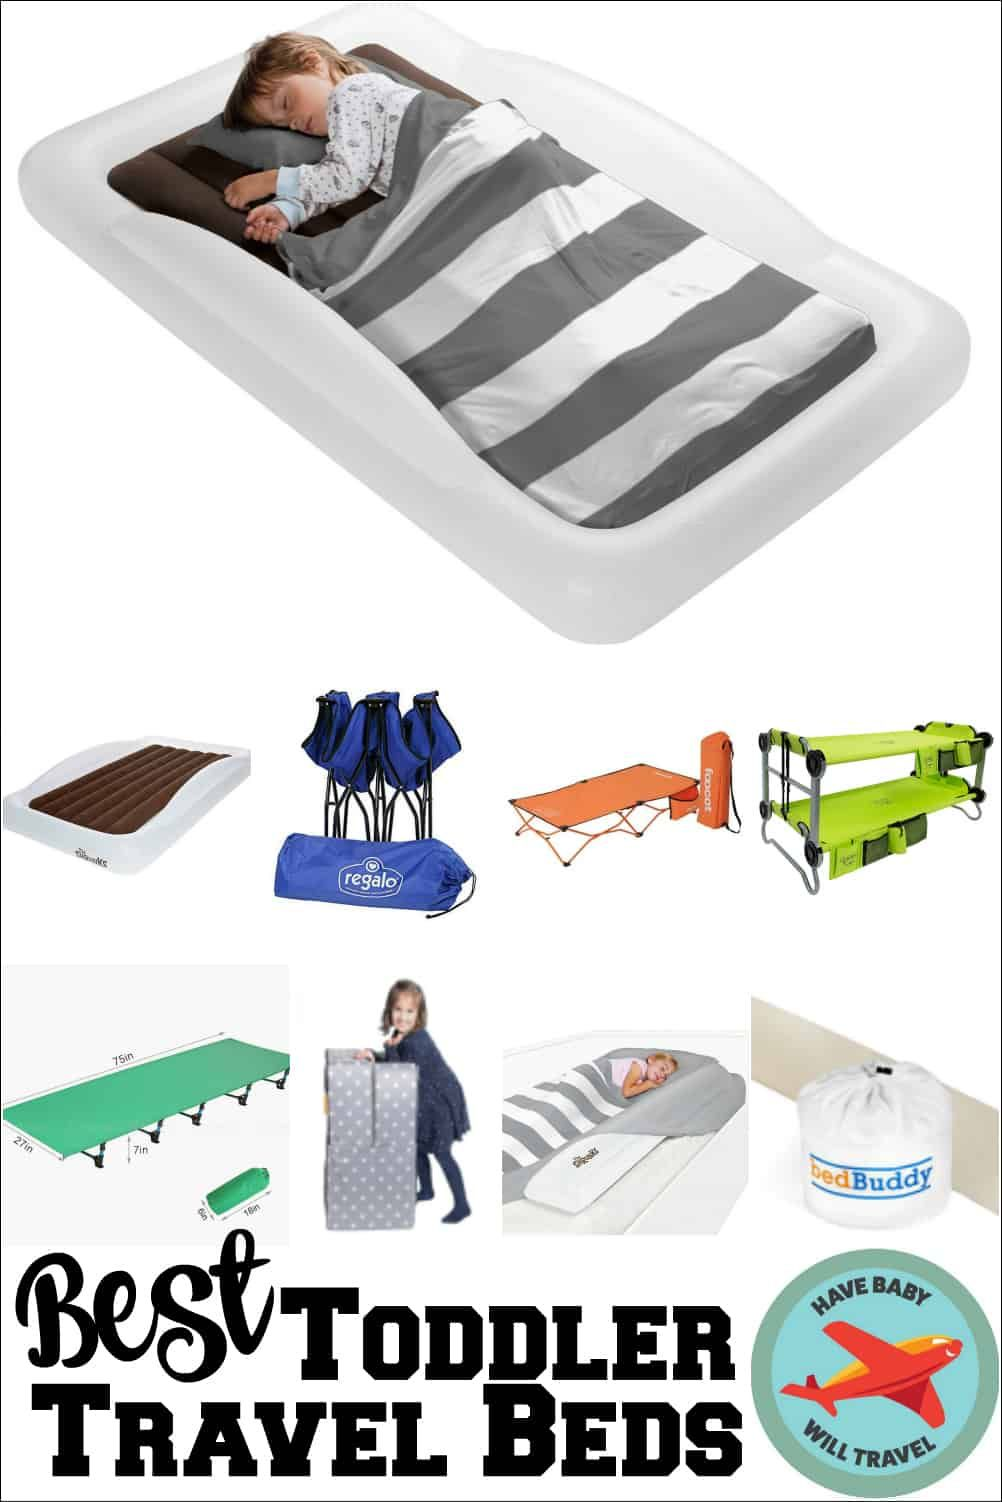 Shopping For A Portable Toddler Bed For Travel You Ll Want It To